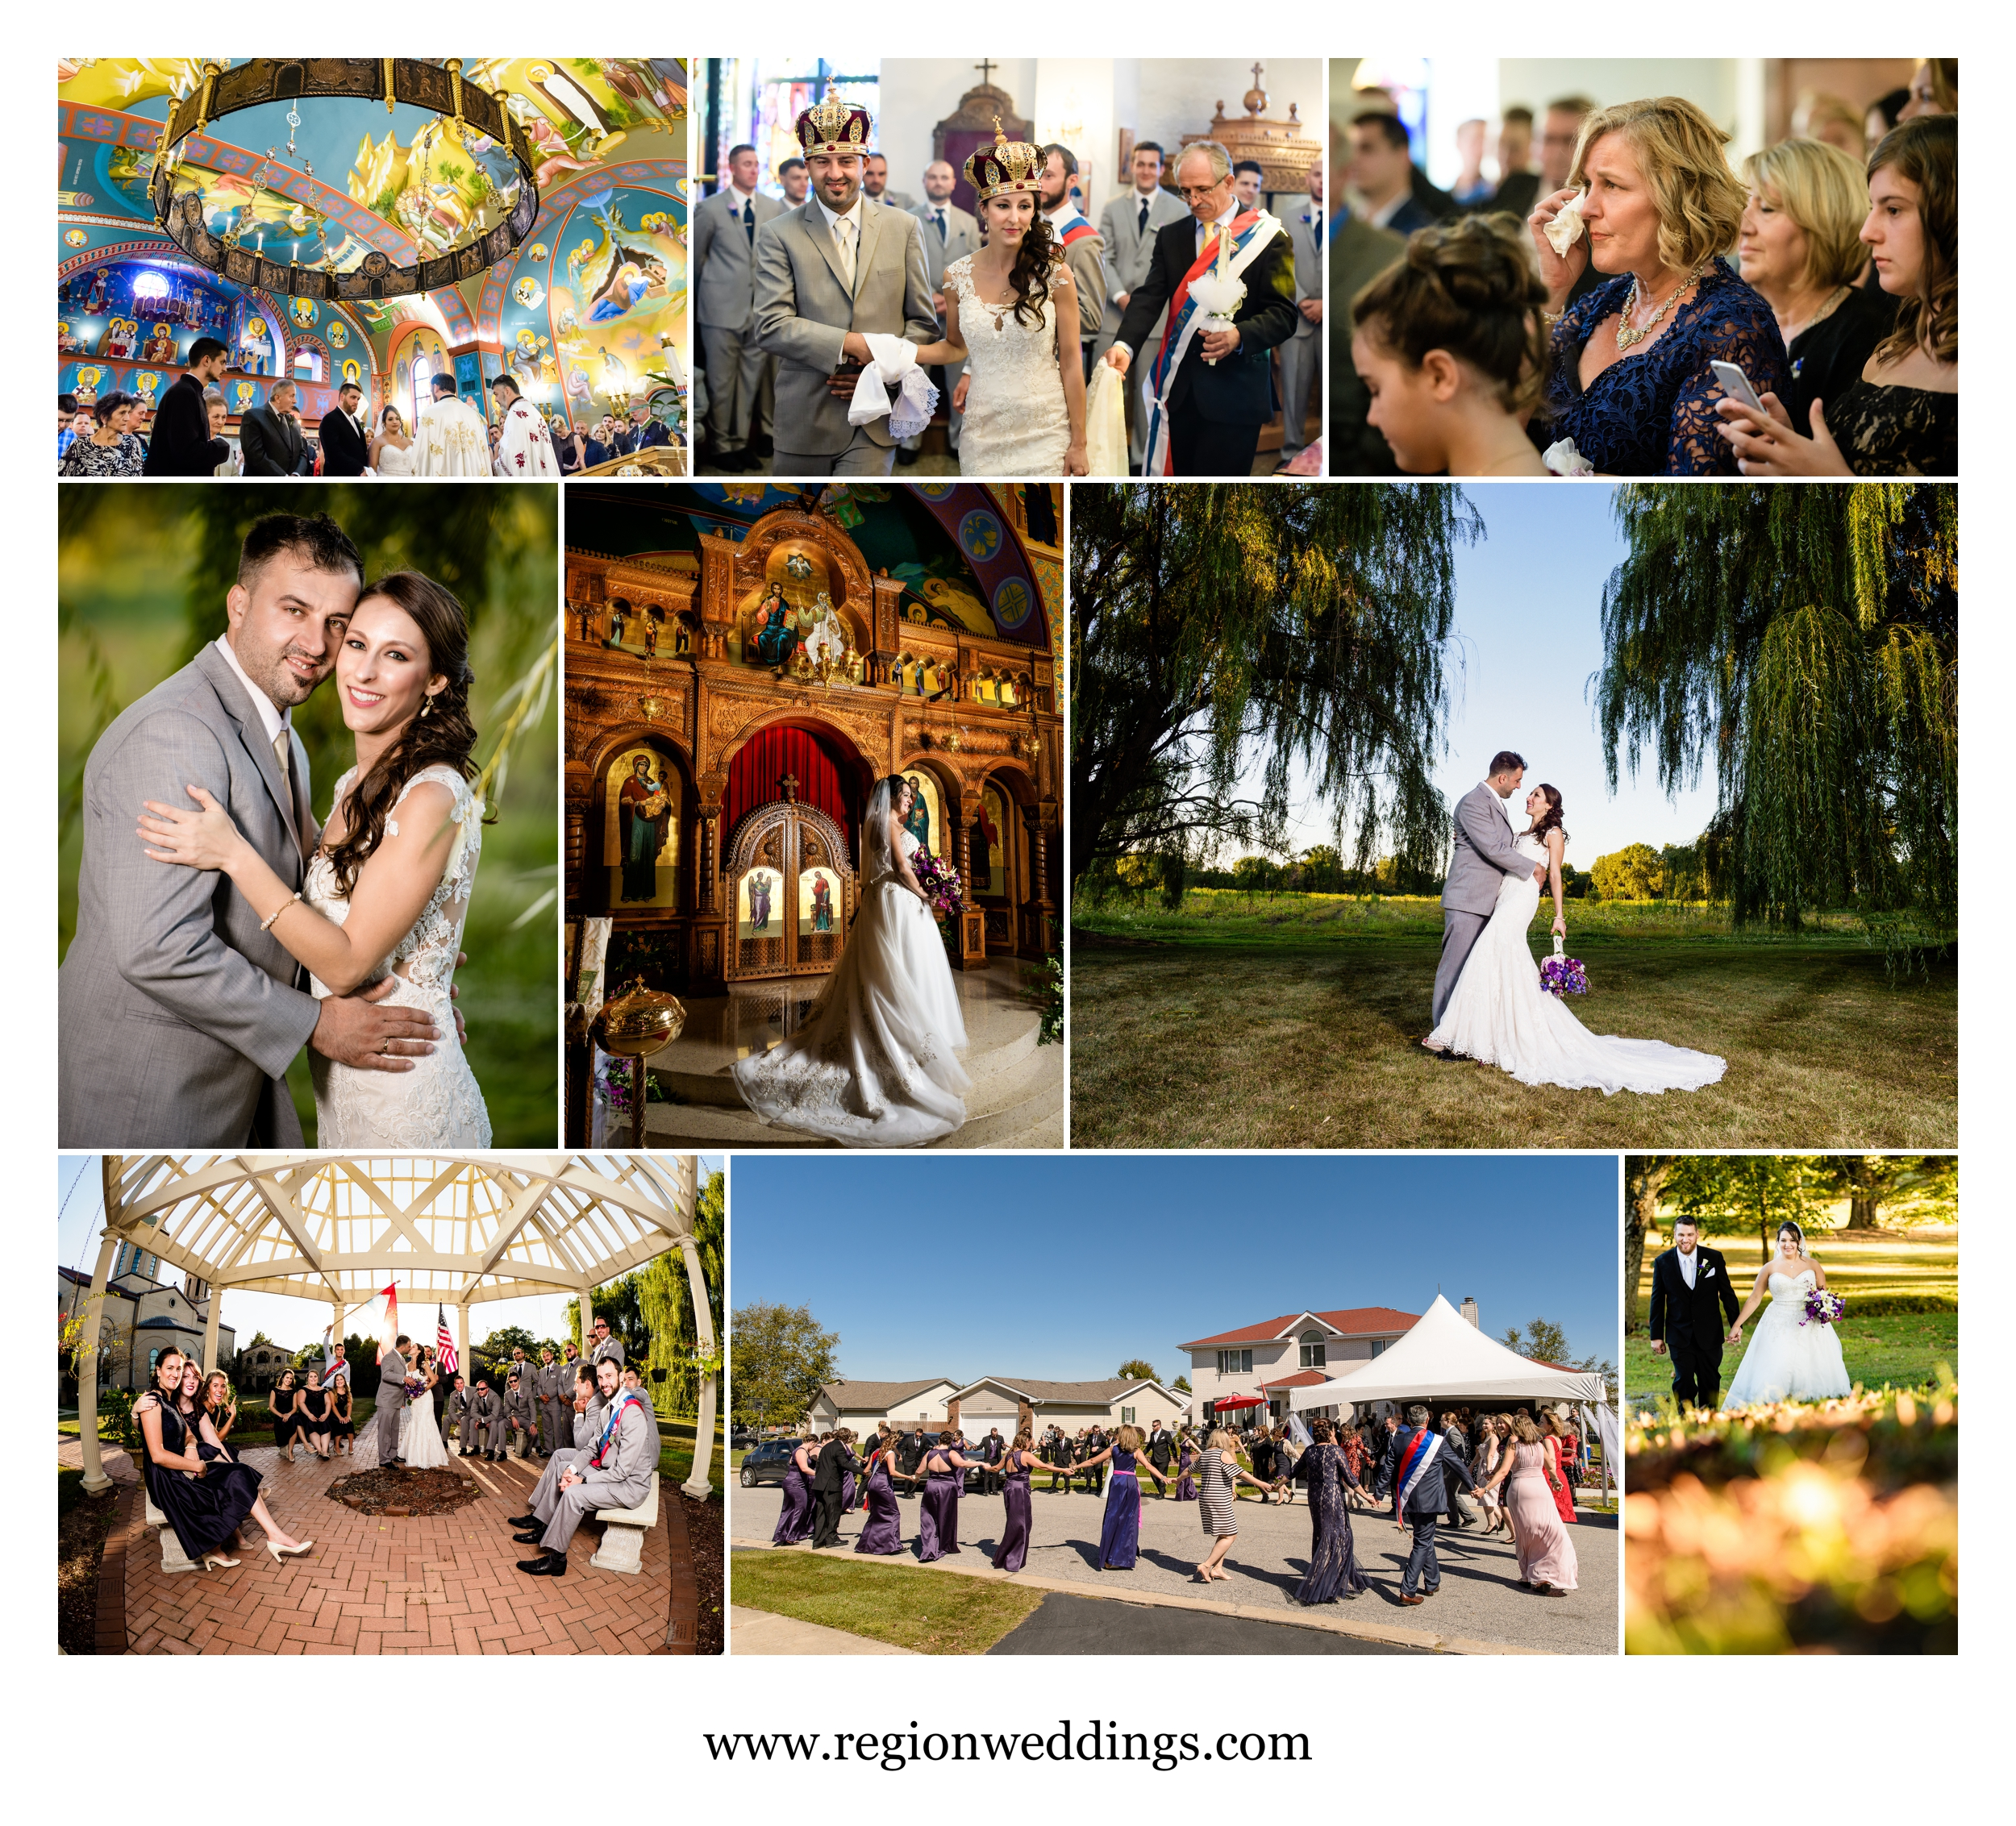 Serbian weddings in Chicago and Schererville, Indiana.